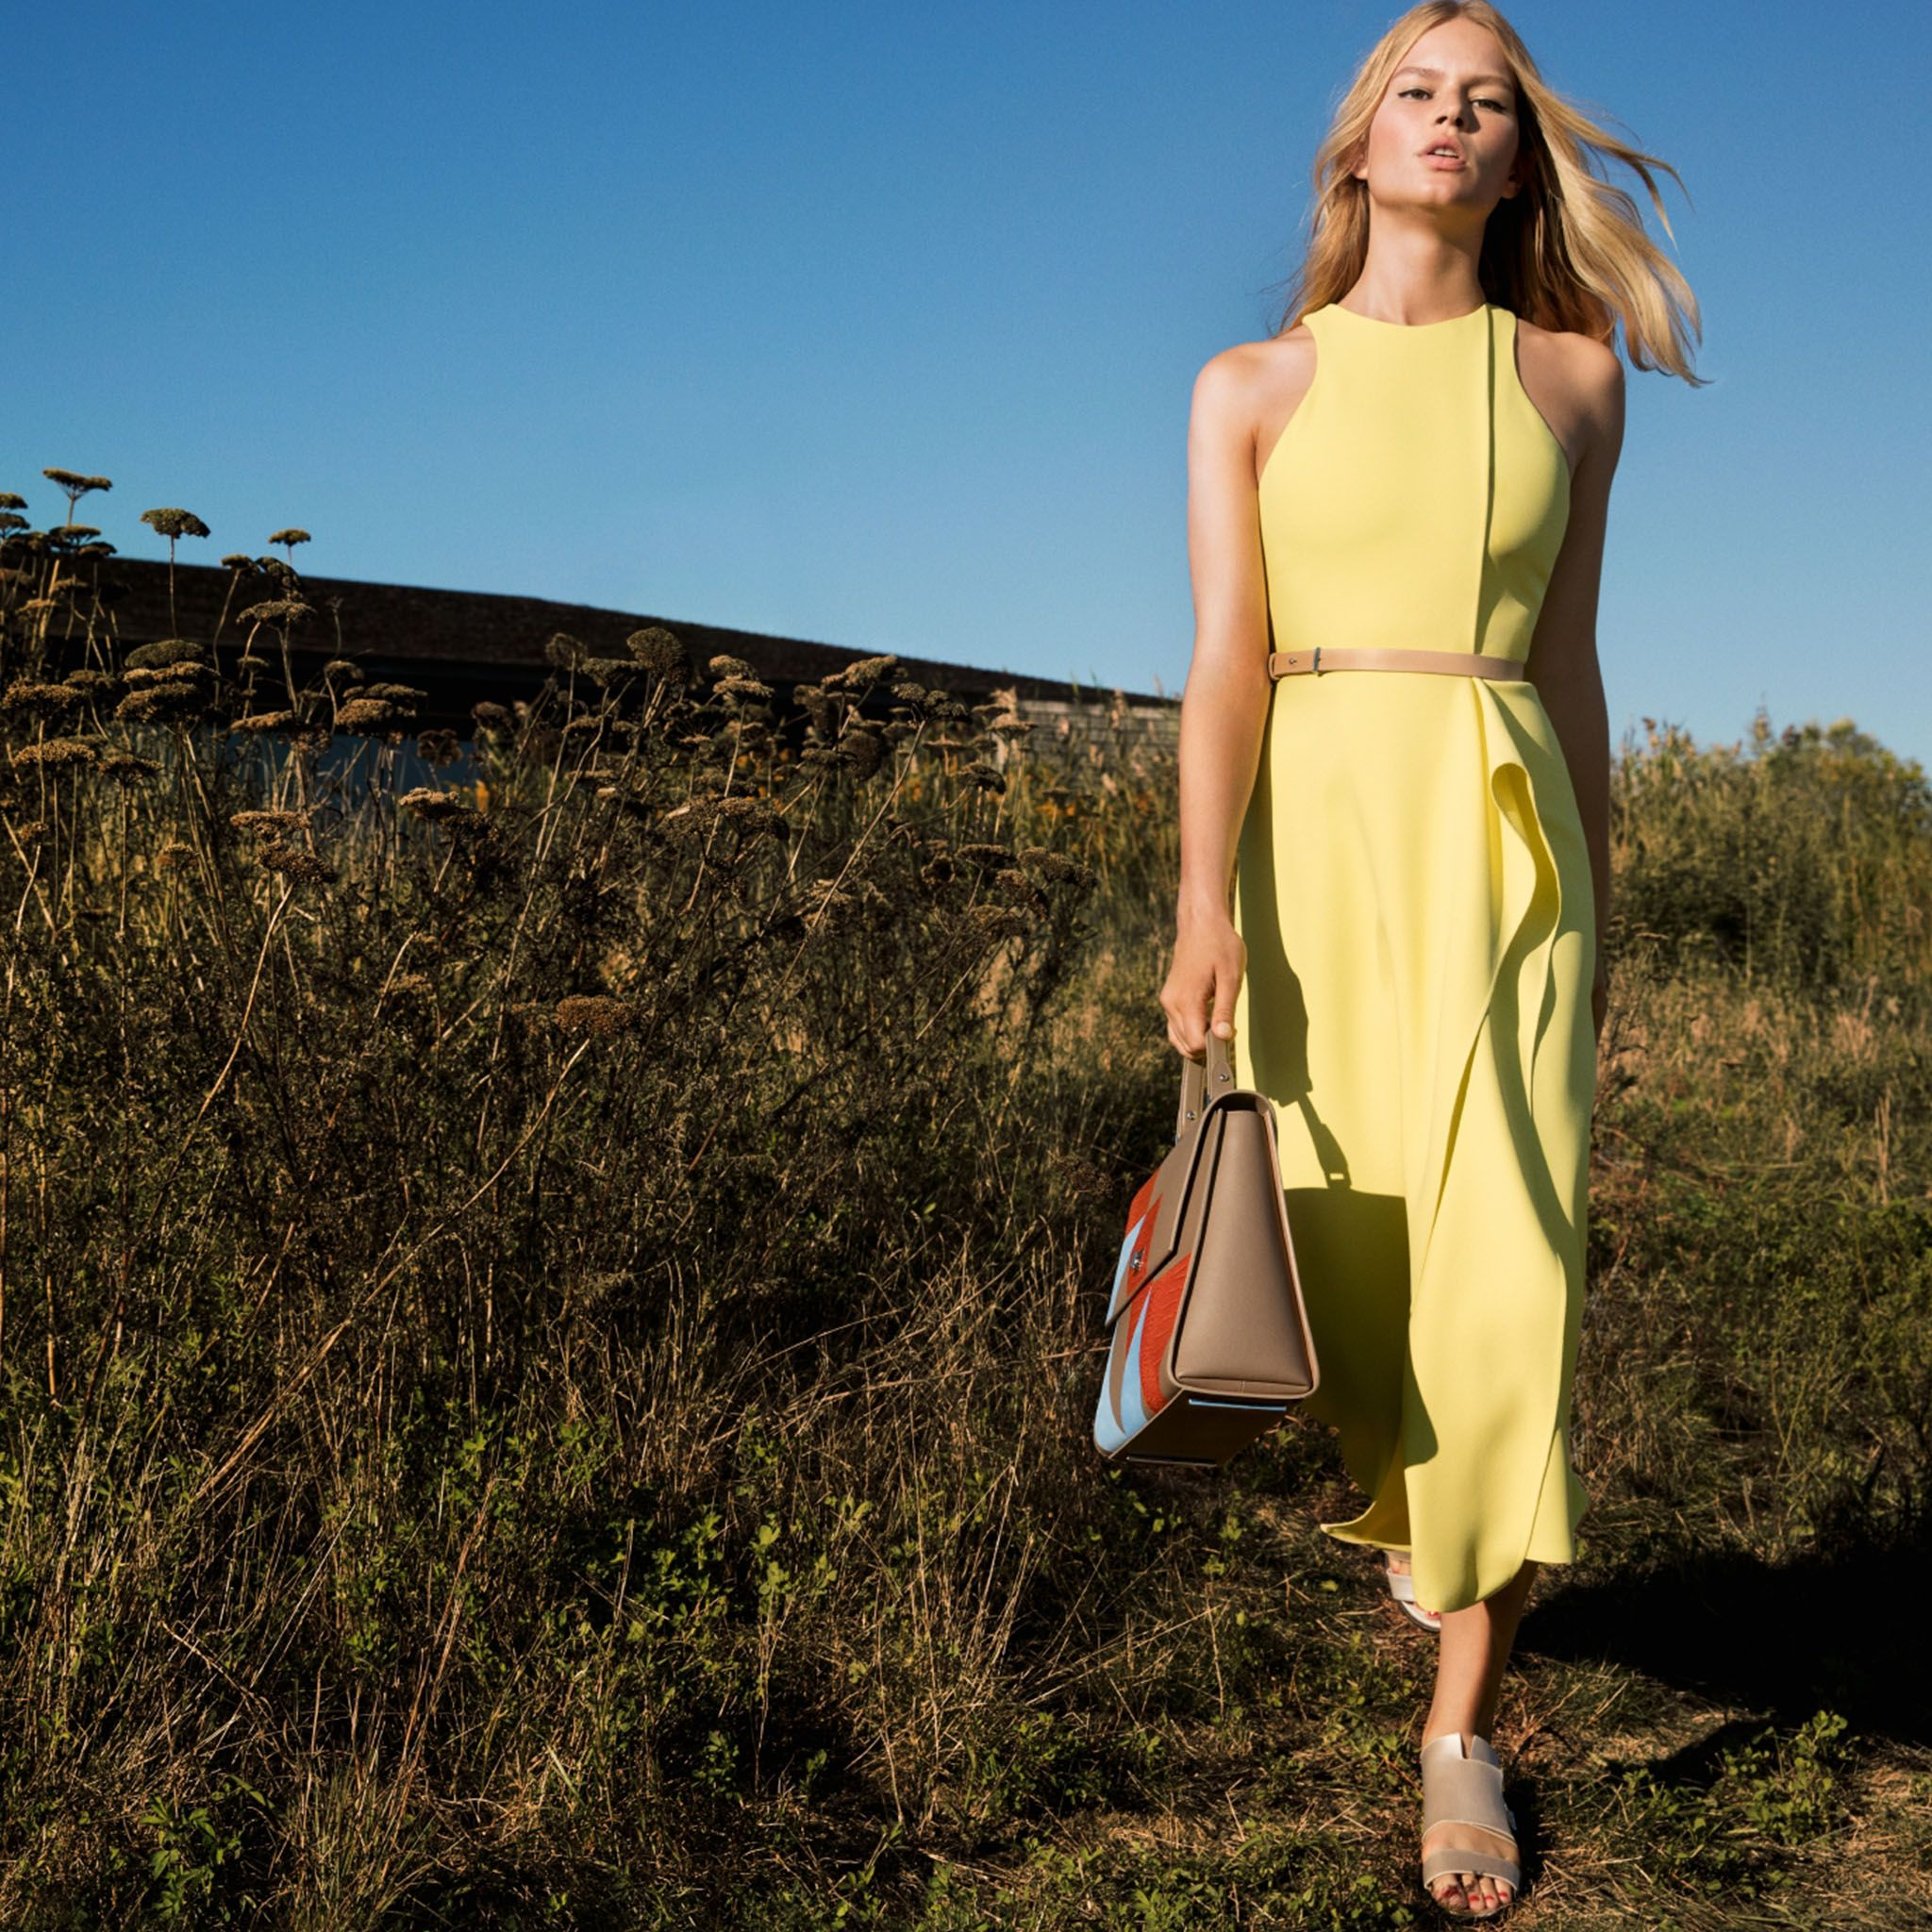 Anna Ewers wears a zest yellow dress with the new patchwork edition BOSS Bespoke bag in the Spring/Summer 2016 campaign #thisisboss